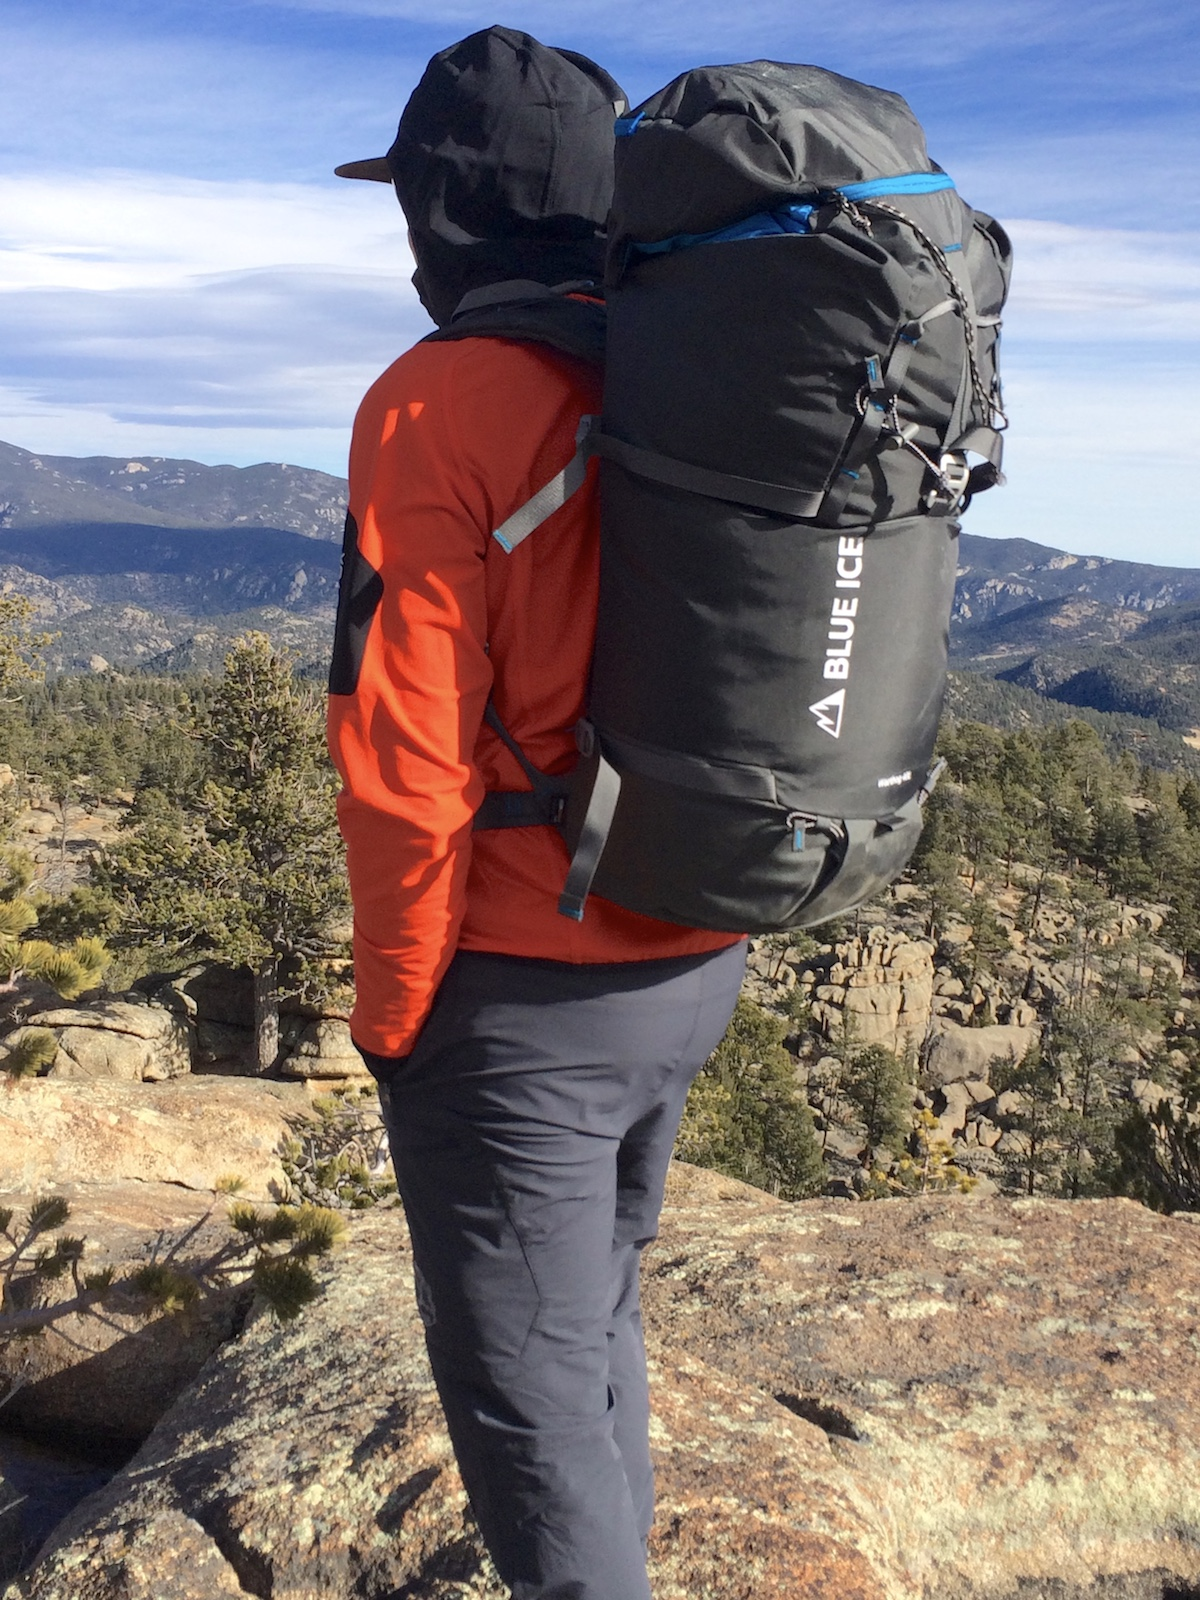 Mike Lewis carrying the Blue Ice Warthog 40L pack in Rocky Mountain National Park, Colorado. [Photo] Chris Wood